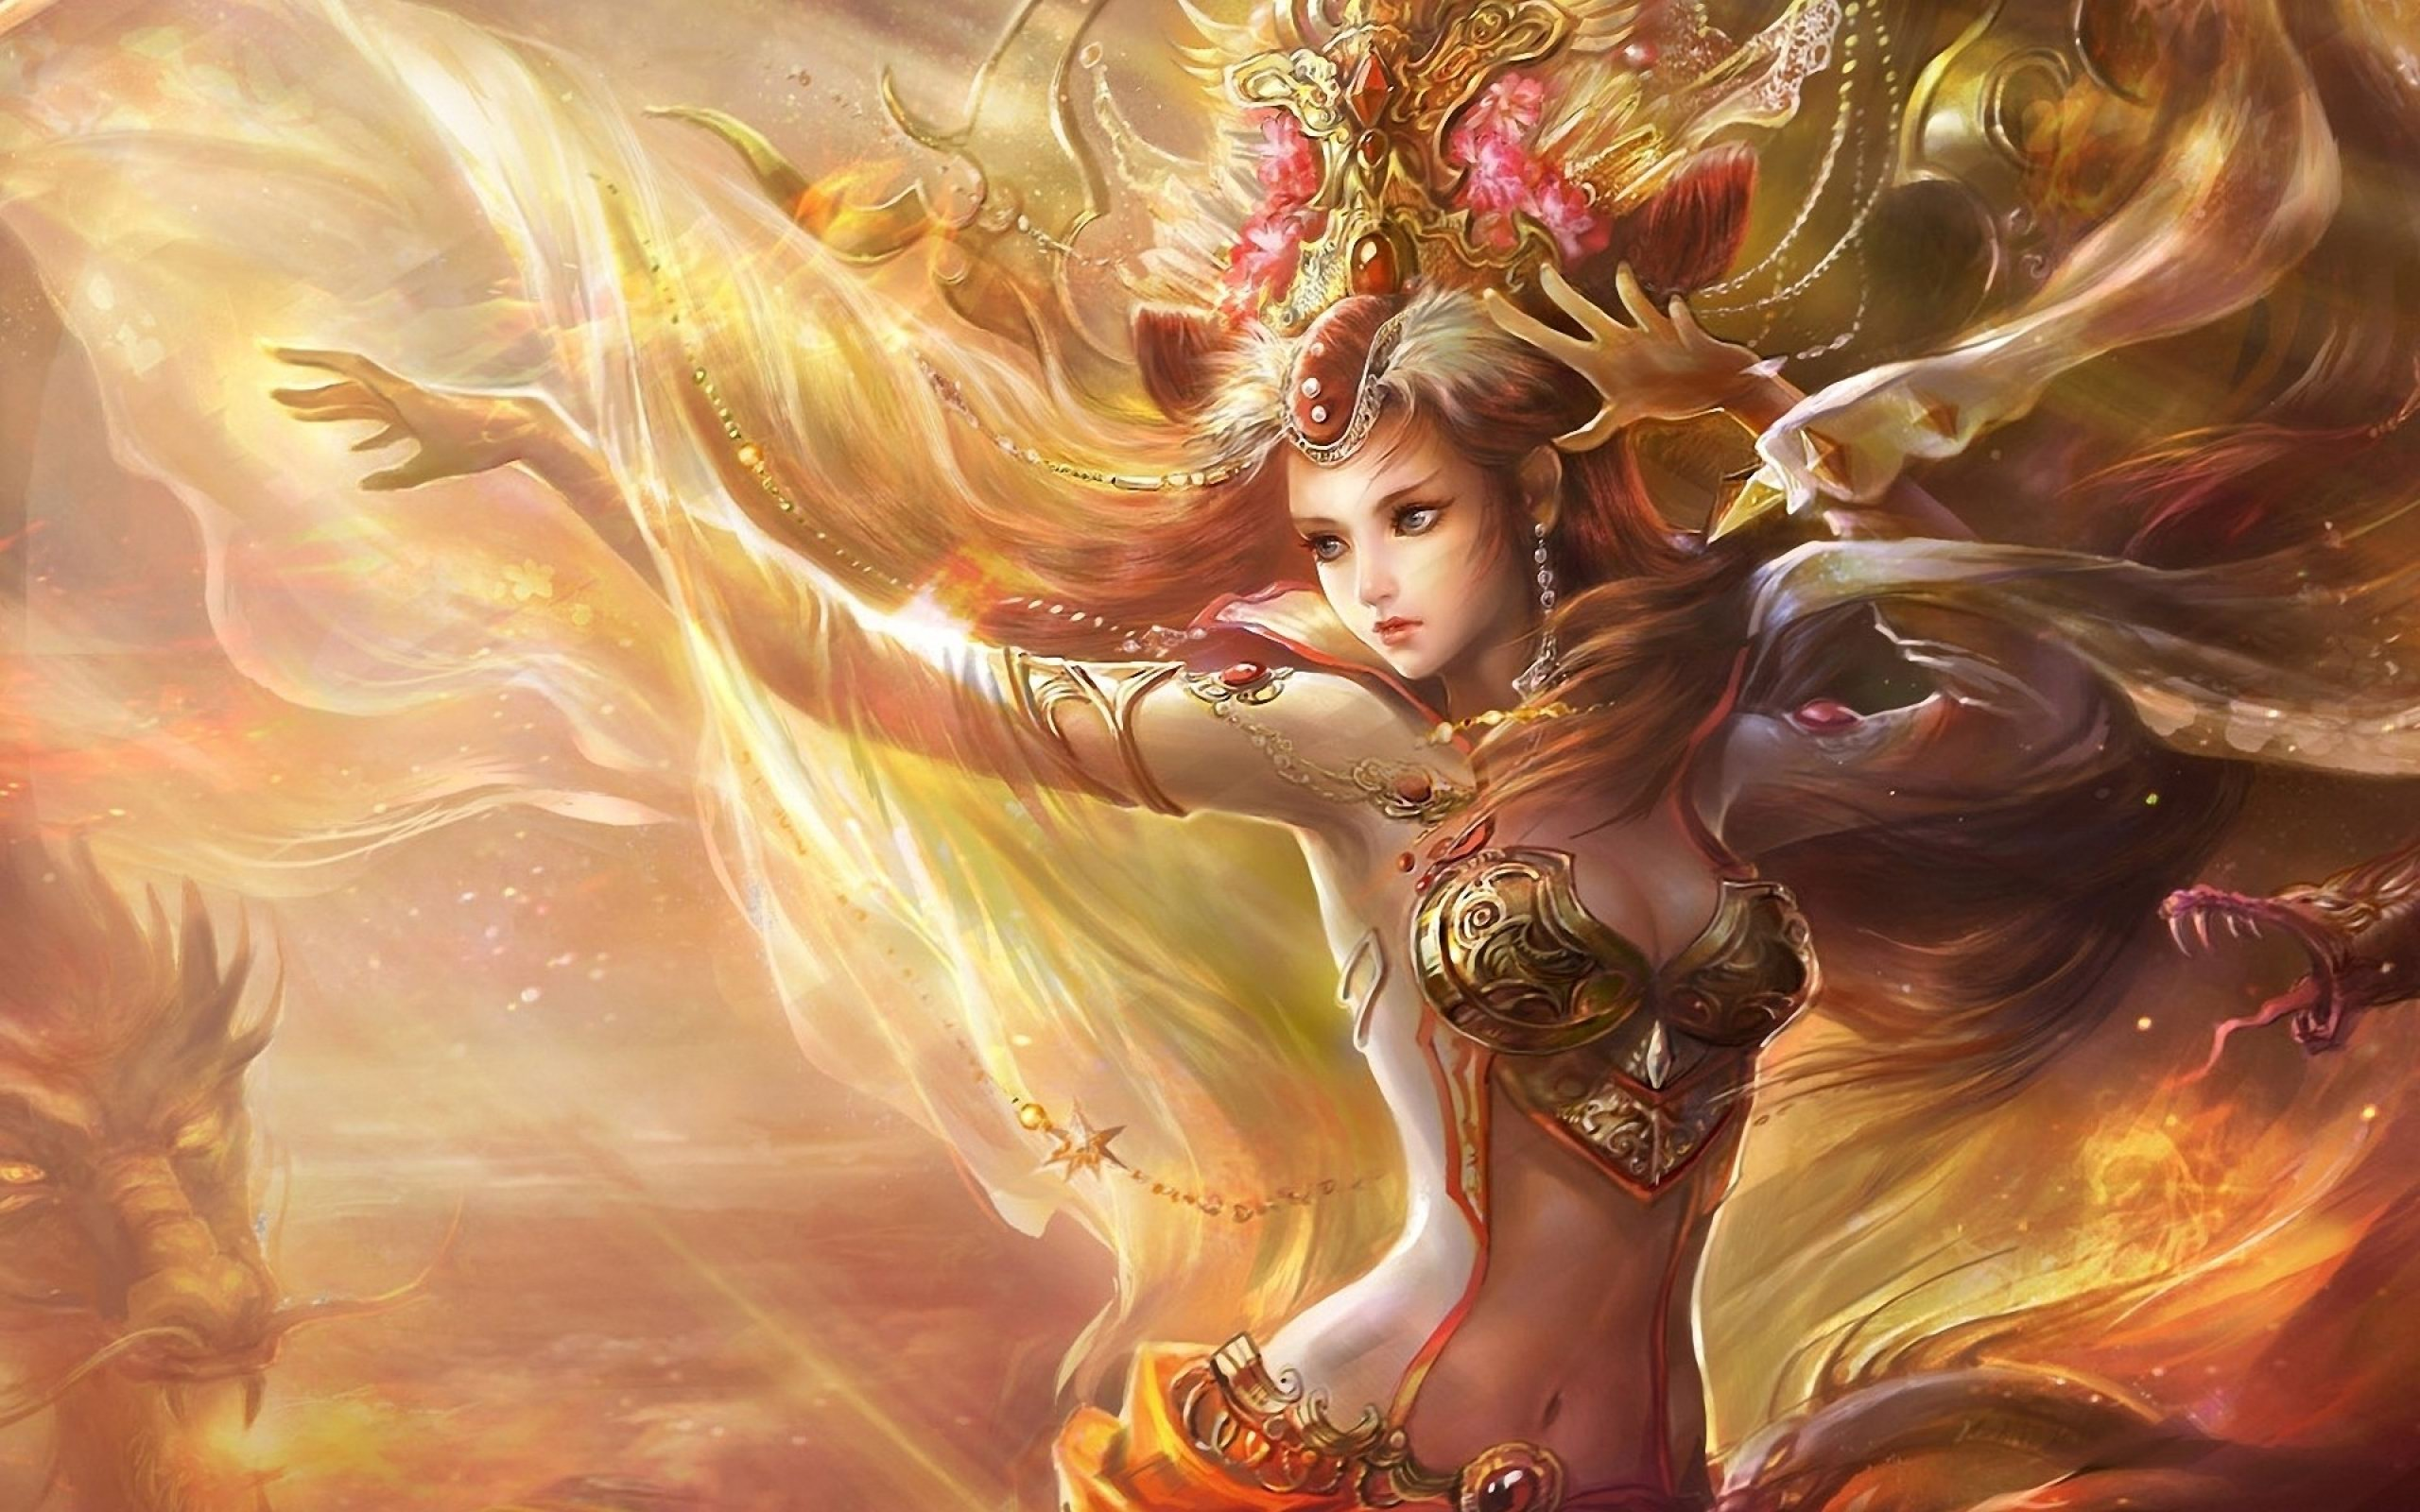 Women Fantasy Art Artwork HD Wallpaper  ImageBank.biz